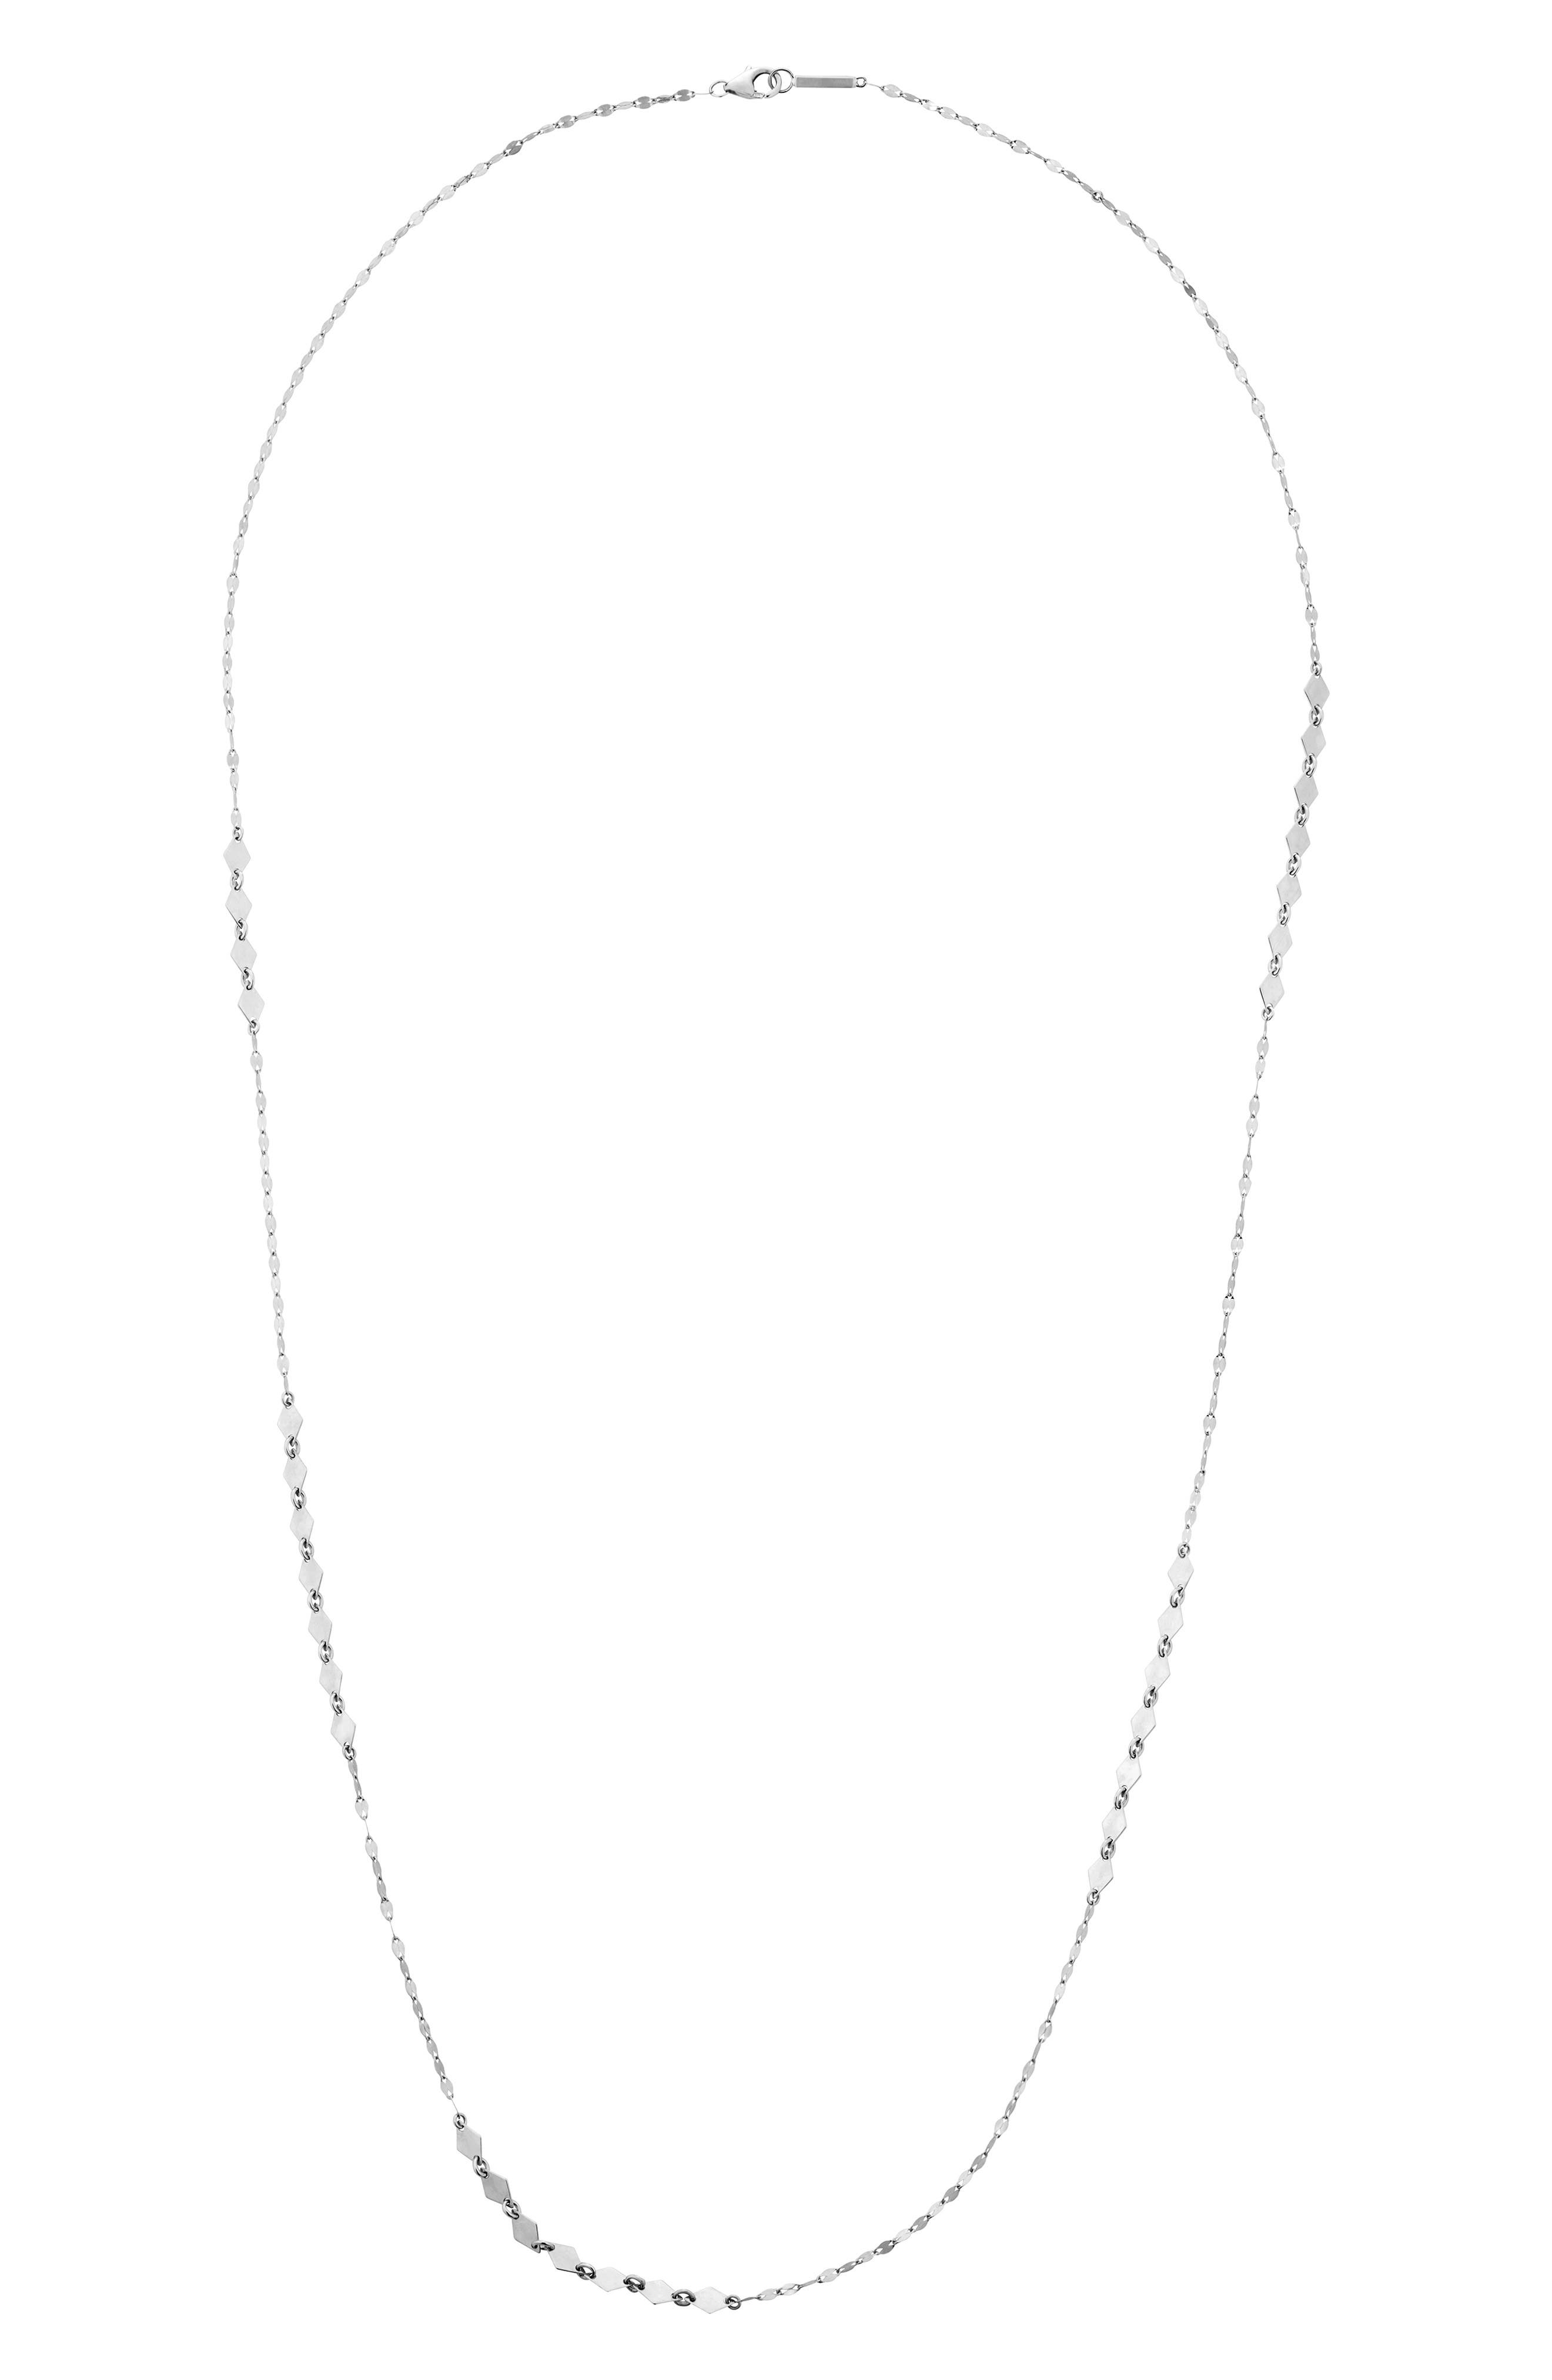 LANA JEWELRY Mixed Mini Kite Long Station Necklace in White Gold